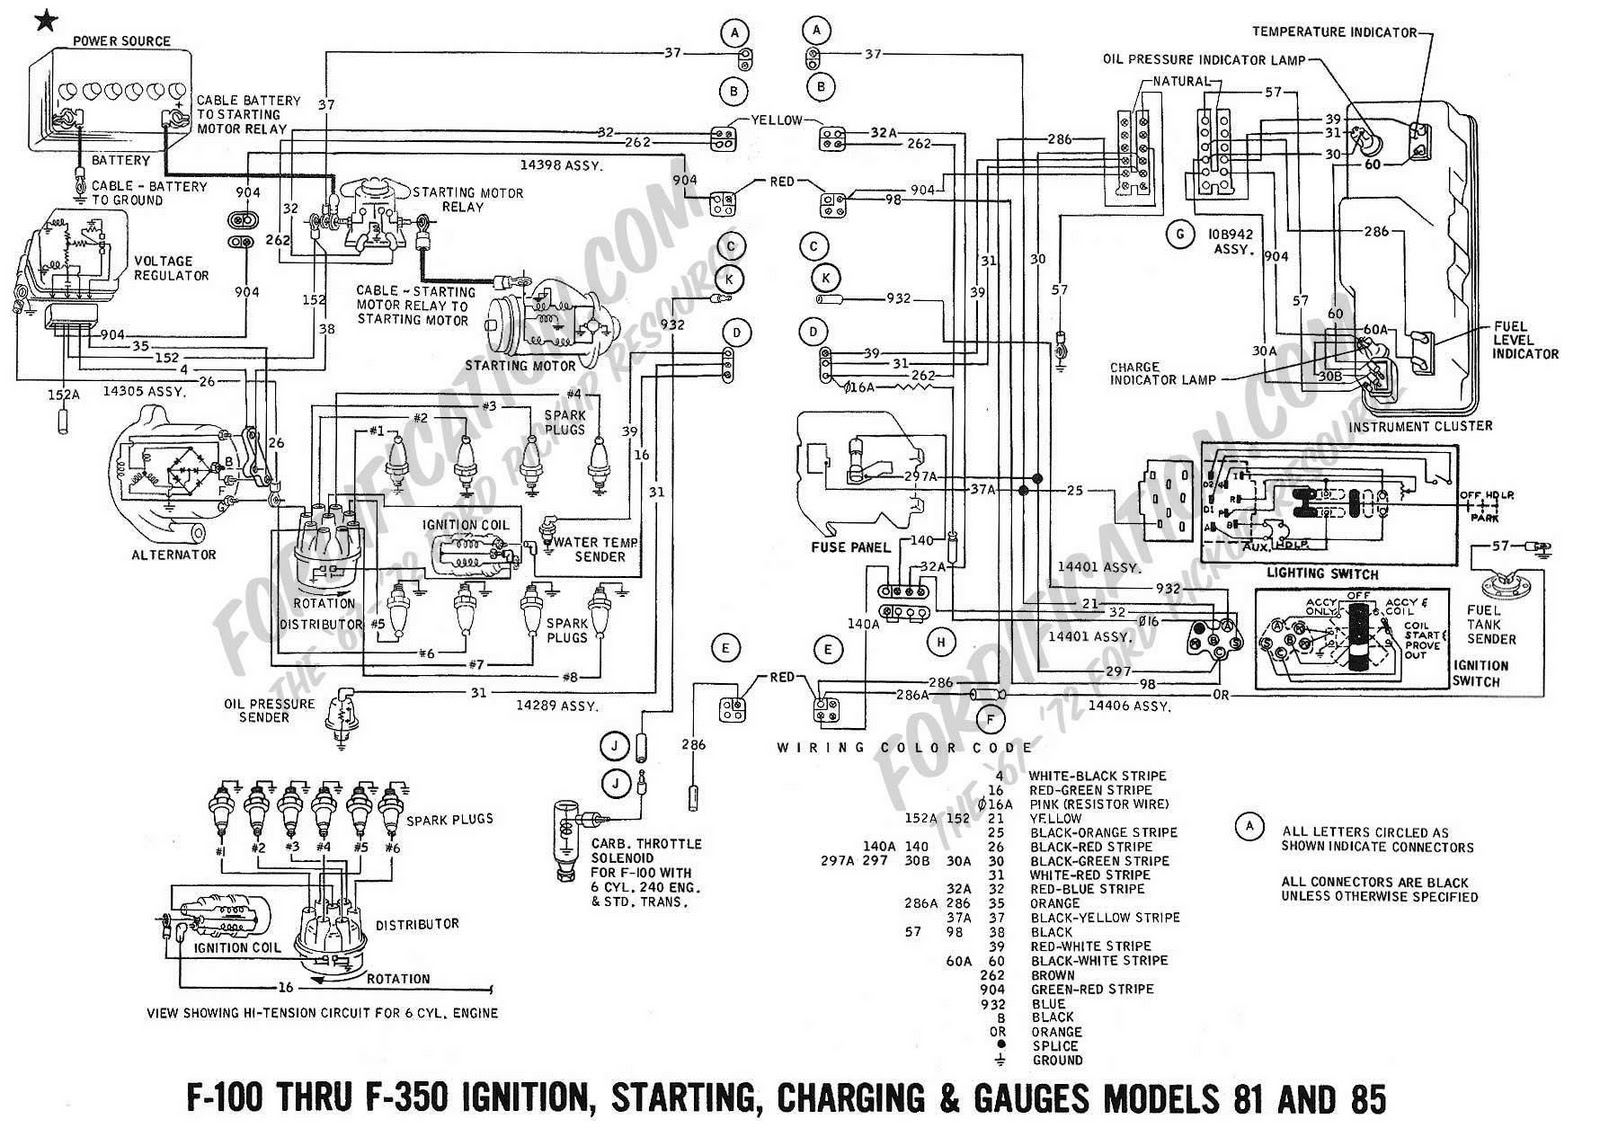 1966 F100 Wiring Diagram Wiring Diagram Schemes 1966 Ford Bronco Wiring  Diagram 1966 Ford F250 Wiring Diagram